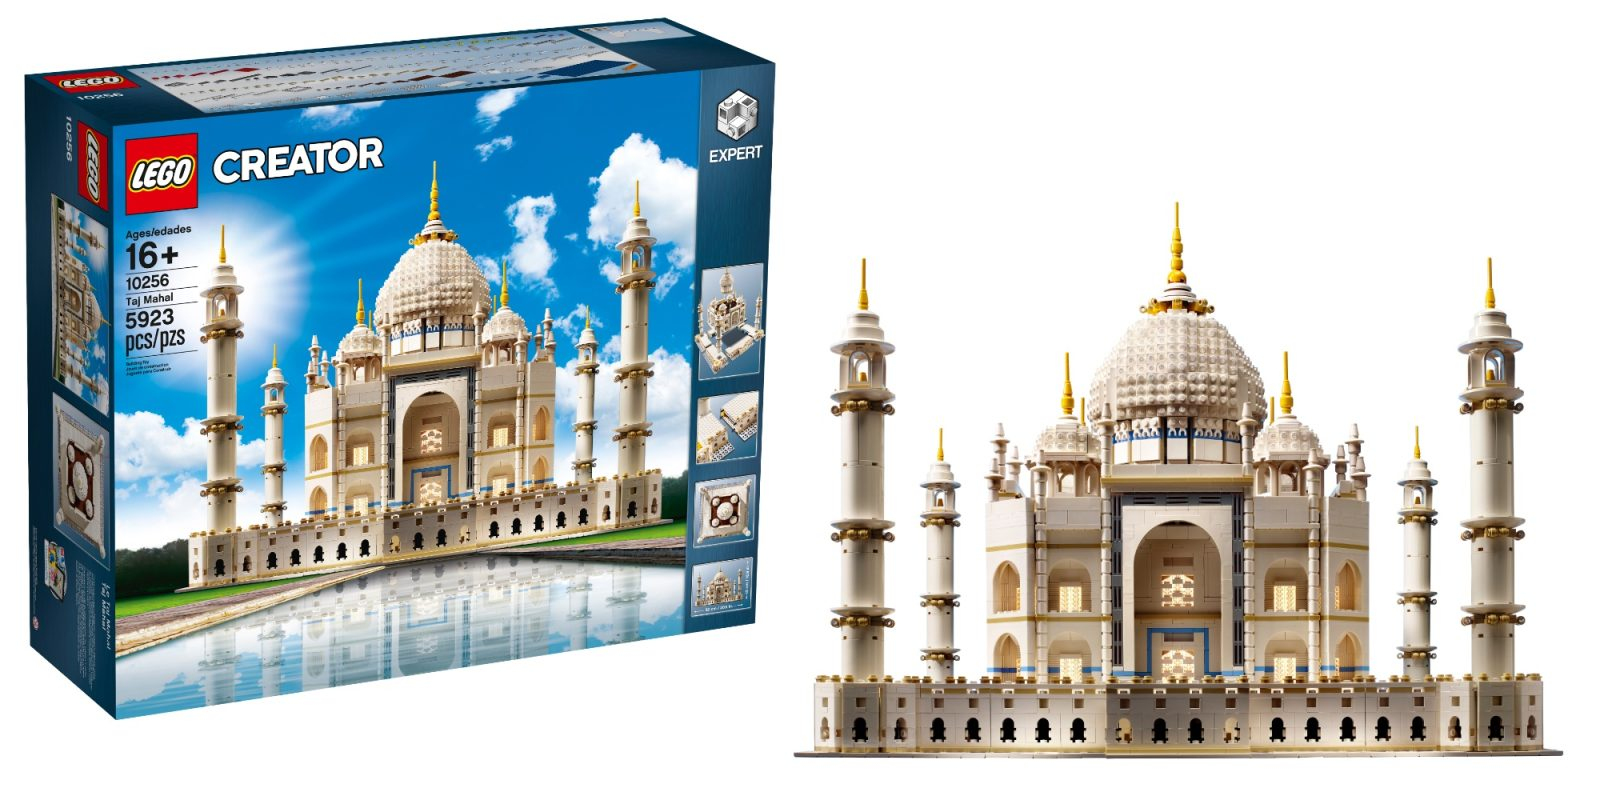 LEGO's 5,900-piece Creator Expert Taj Mahal drops to new low at $90 off, more